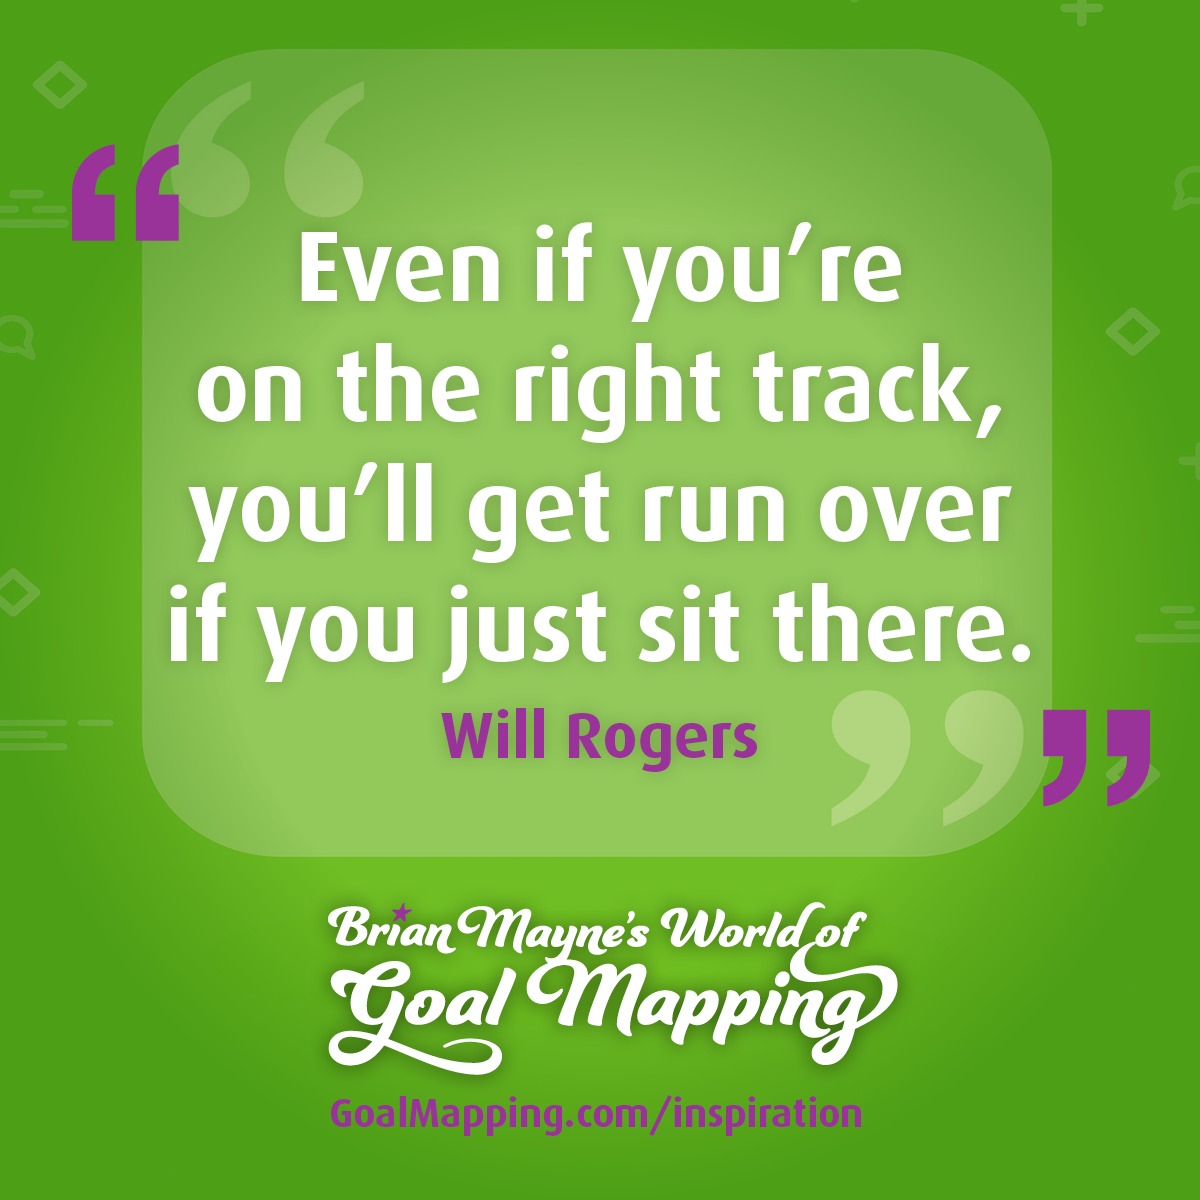 """Even if you're on the right track, you'll get run over if you just sit there."" Will Rogers"